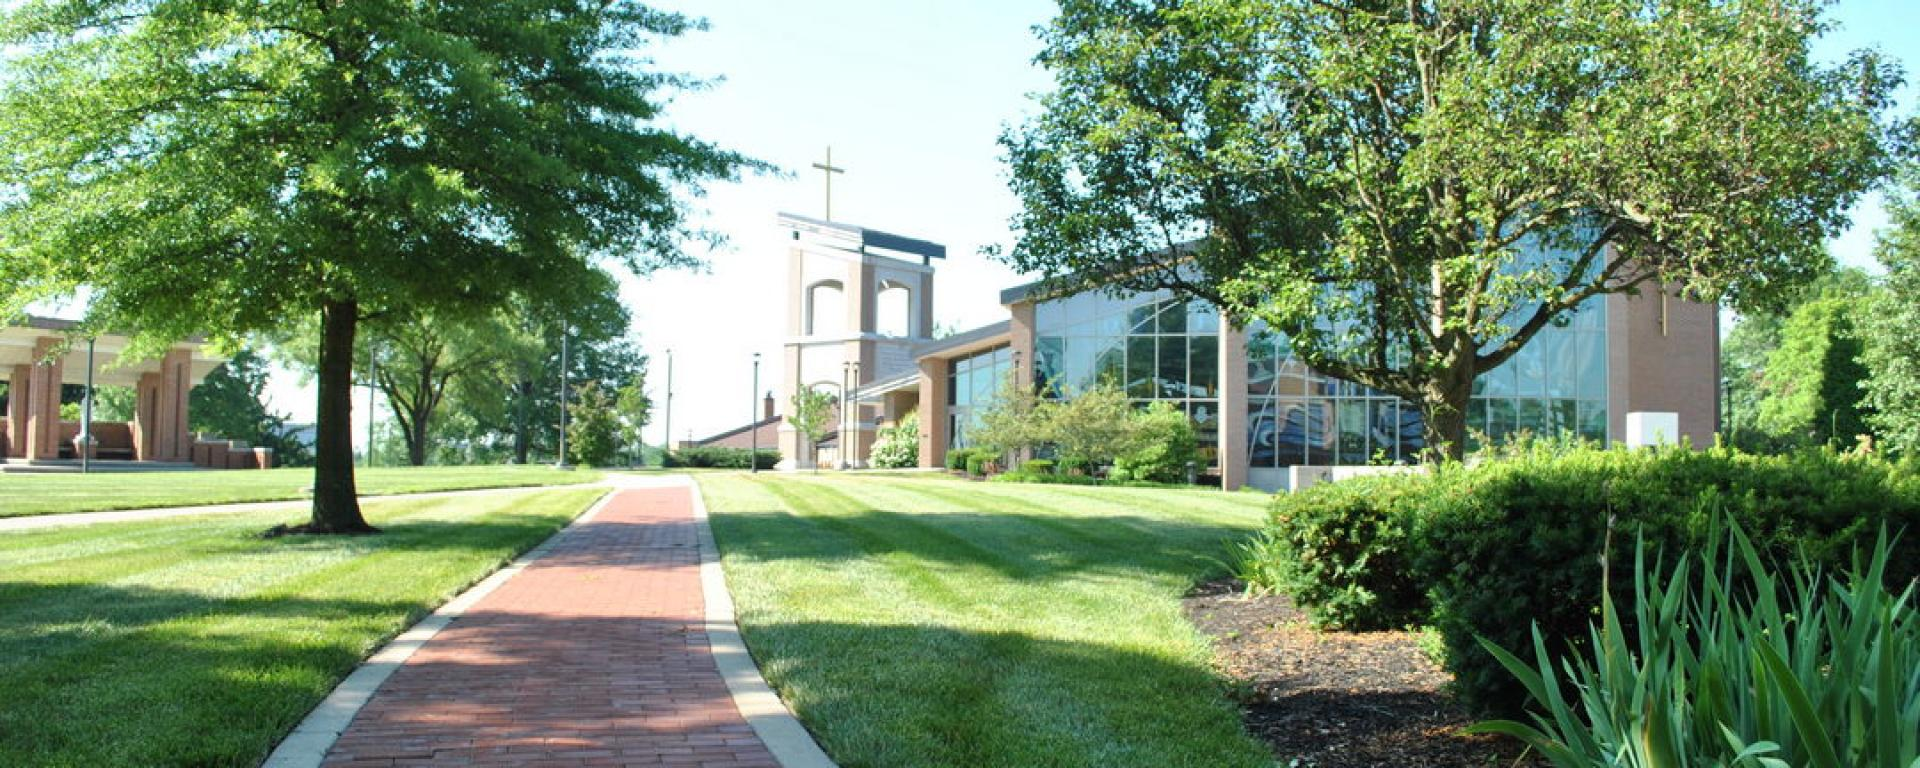 Thomas More University Chapel